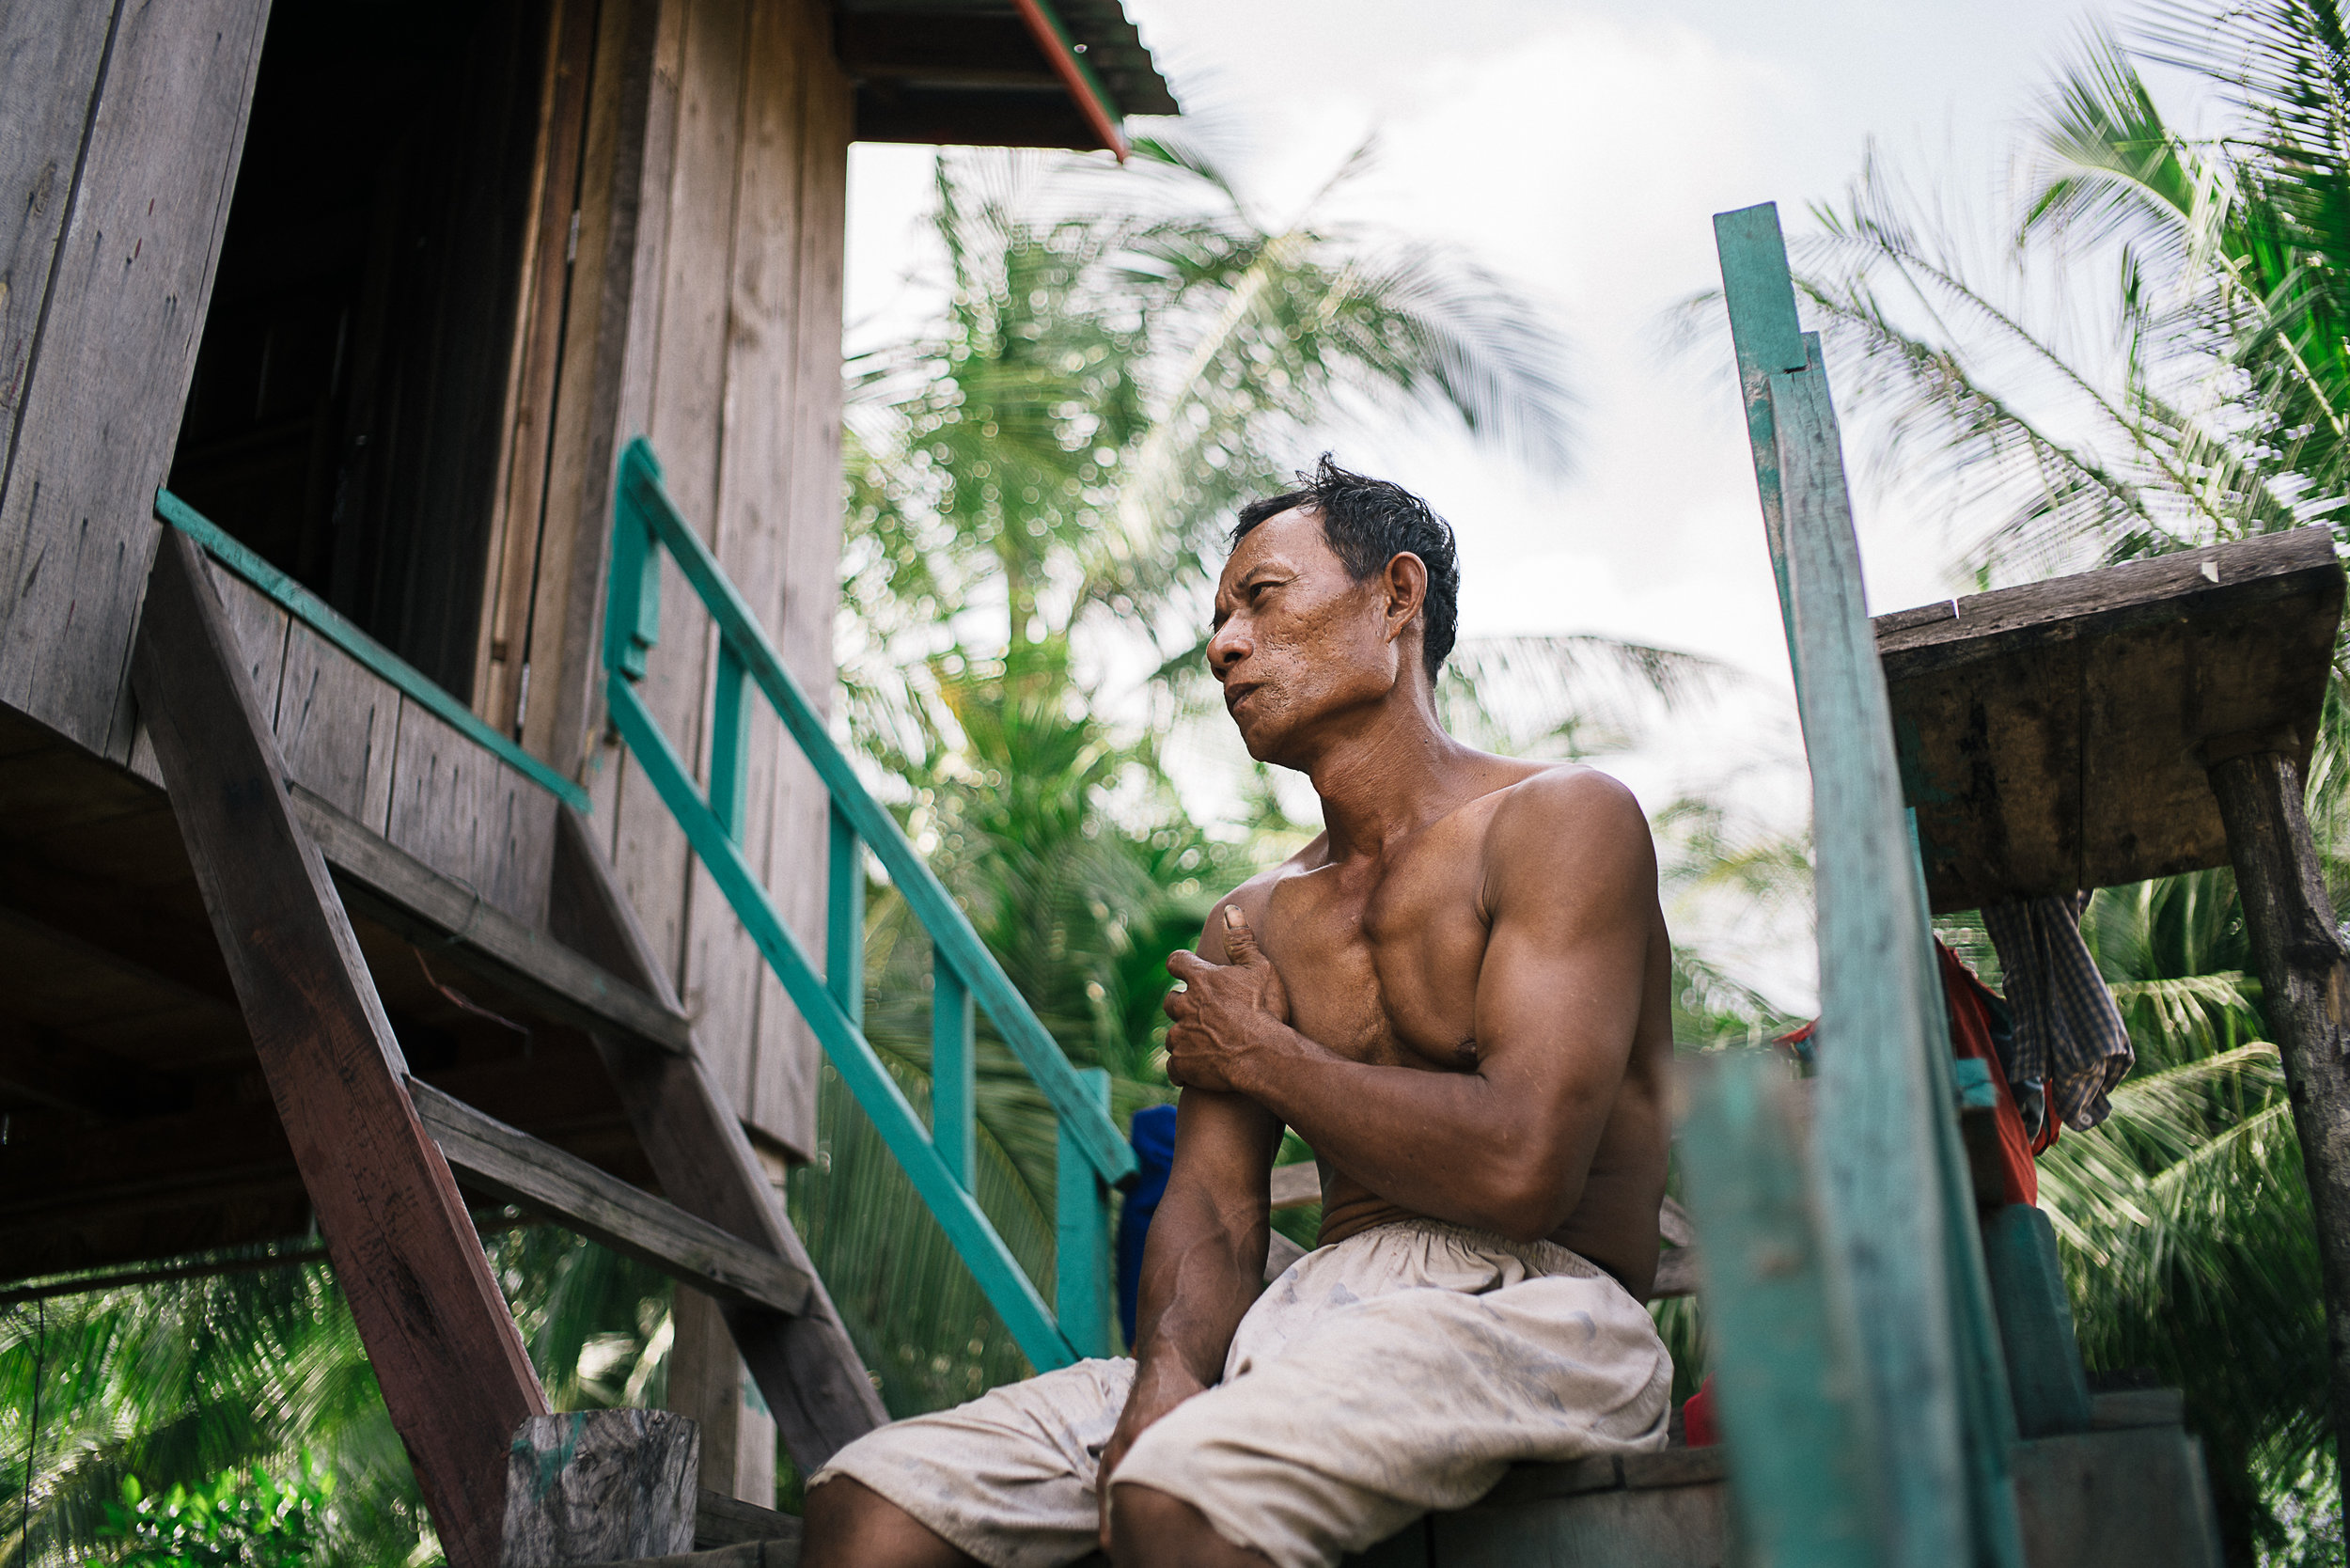 Even when Meak Sok, 45, was successful at times chasing away the big ships, it was still not enough as the trail of oil pollution left behind in the water quickly took a toll on the local crab population.